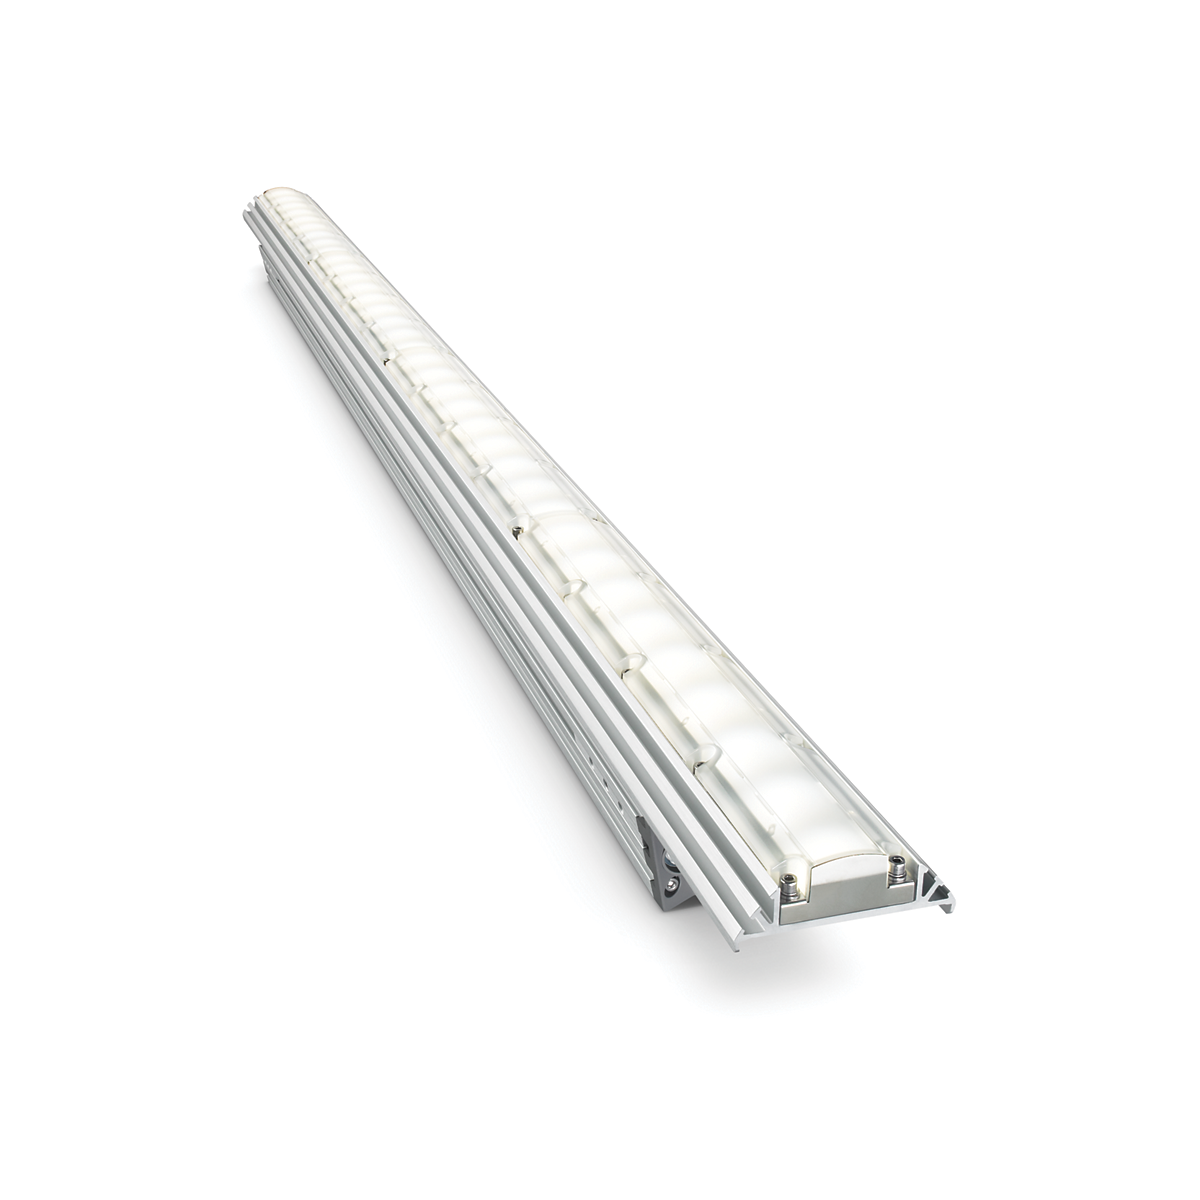 Ew graze ec powercore linear lighting philips lighting Exterior linear led lighting